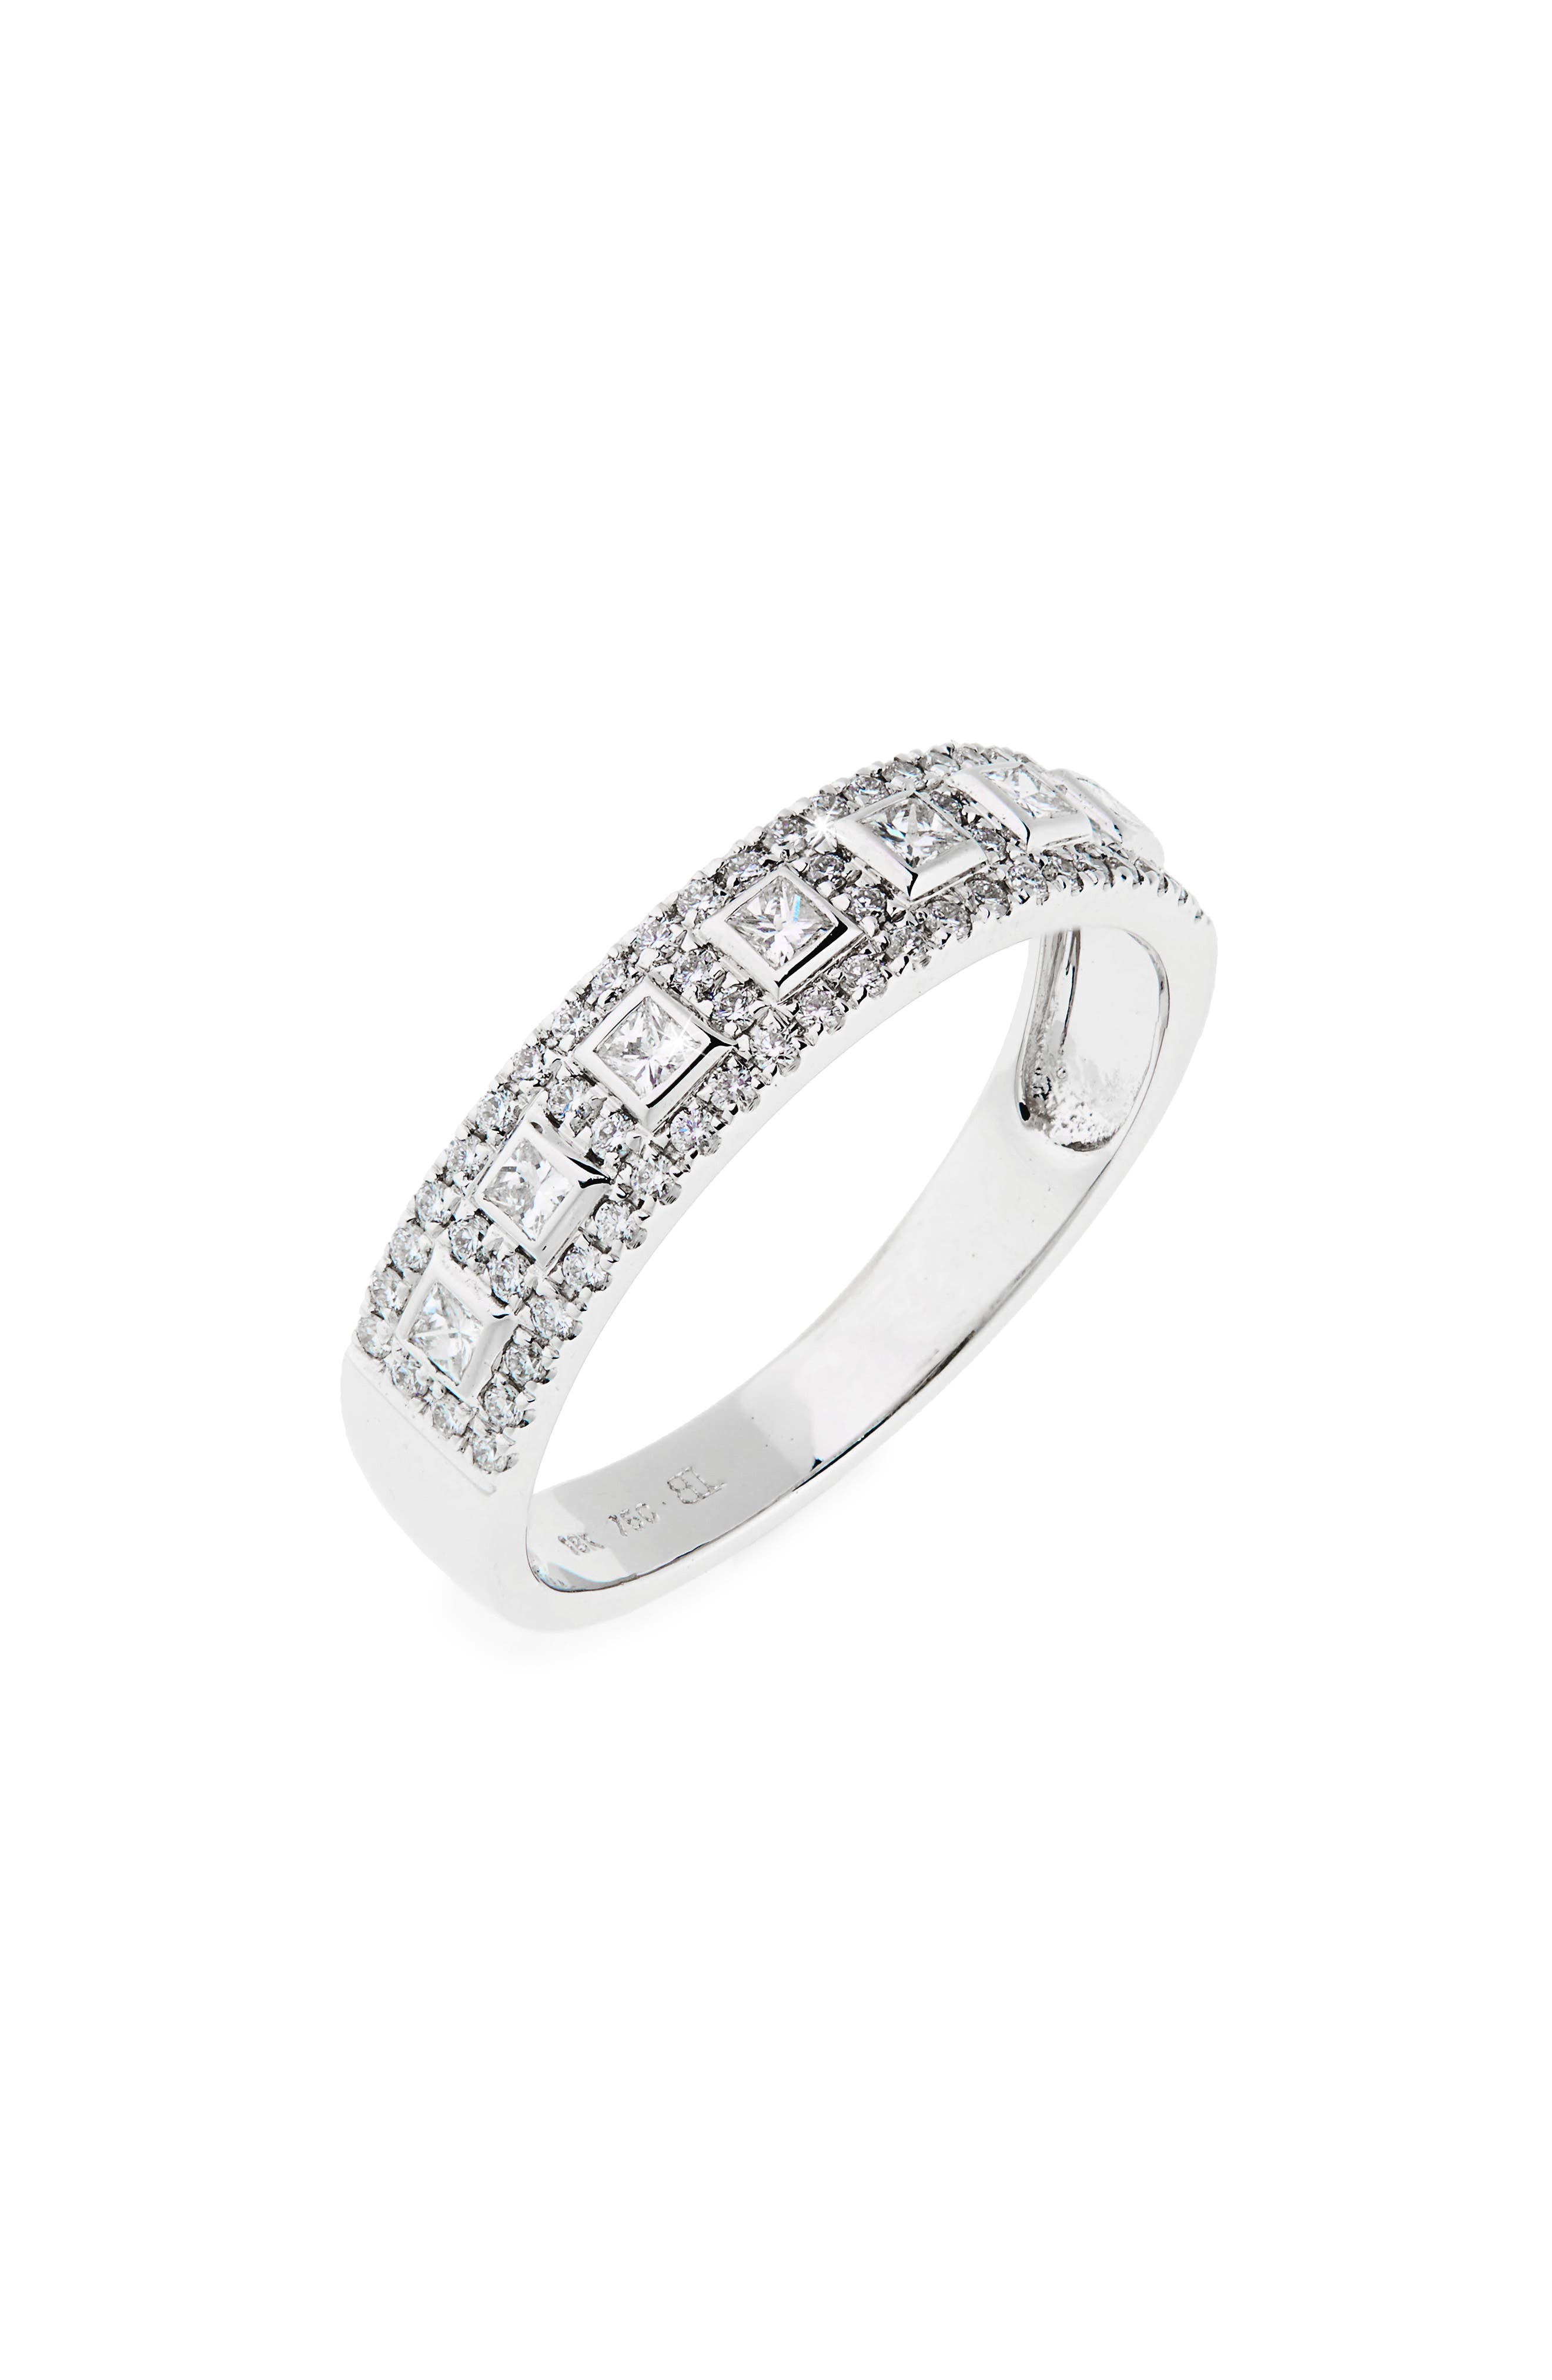 Amara Diamond Band Ring,                             Main thumbnail 1, color,                             White Gold